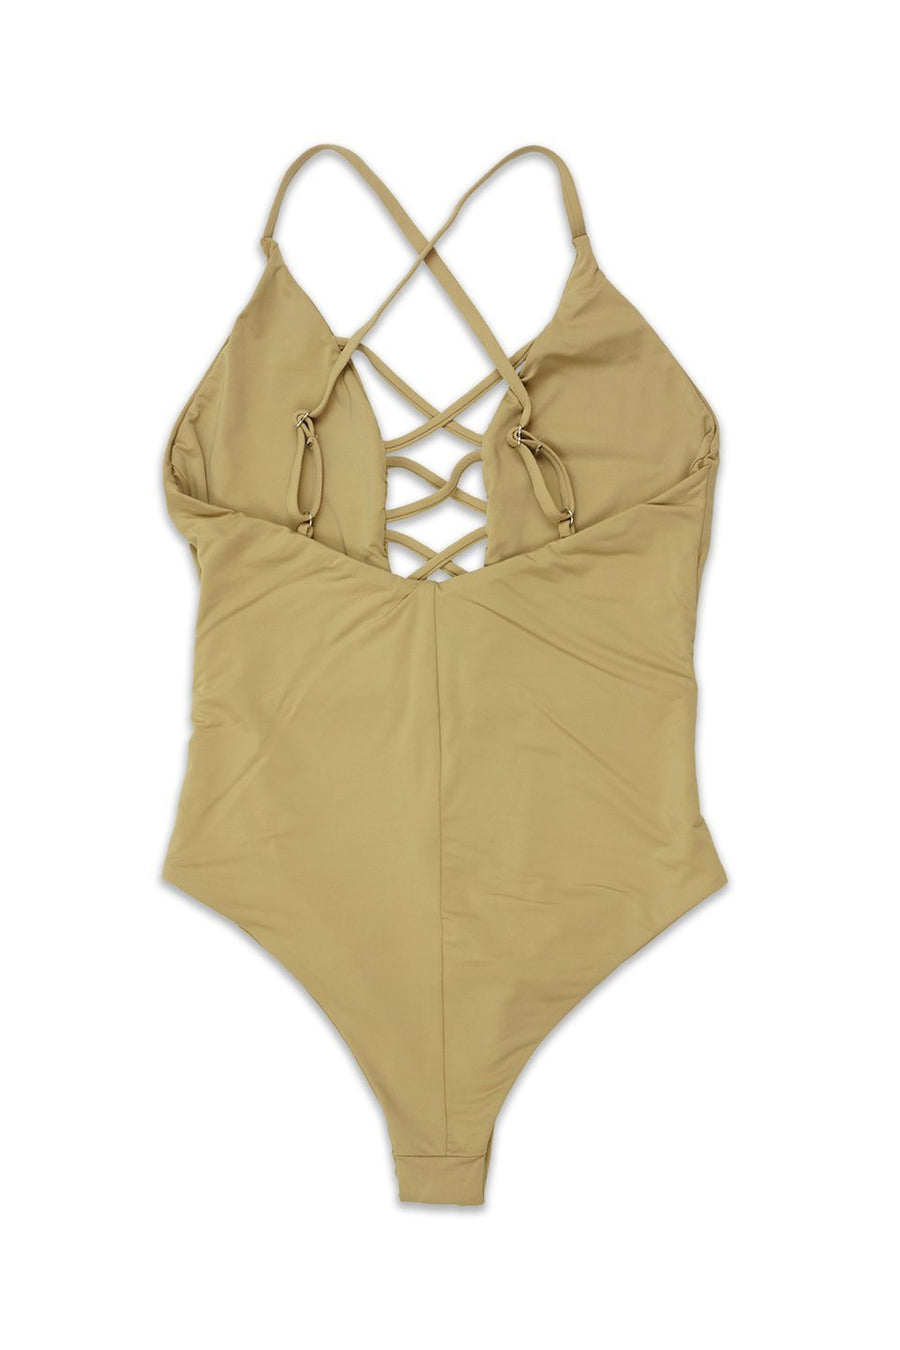 CAGED FRONT MODERATE COVERAGE ONE PIECE - BEIGE - Dippin' Daisy's Swimwear